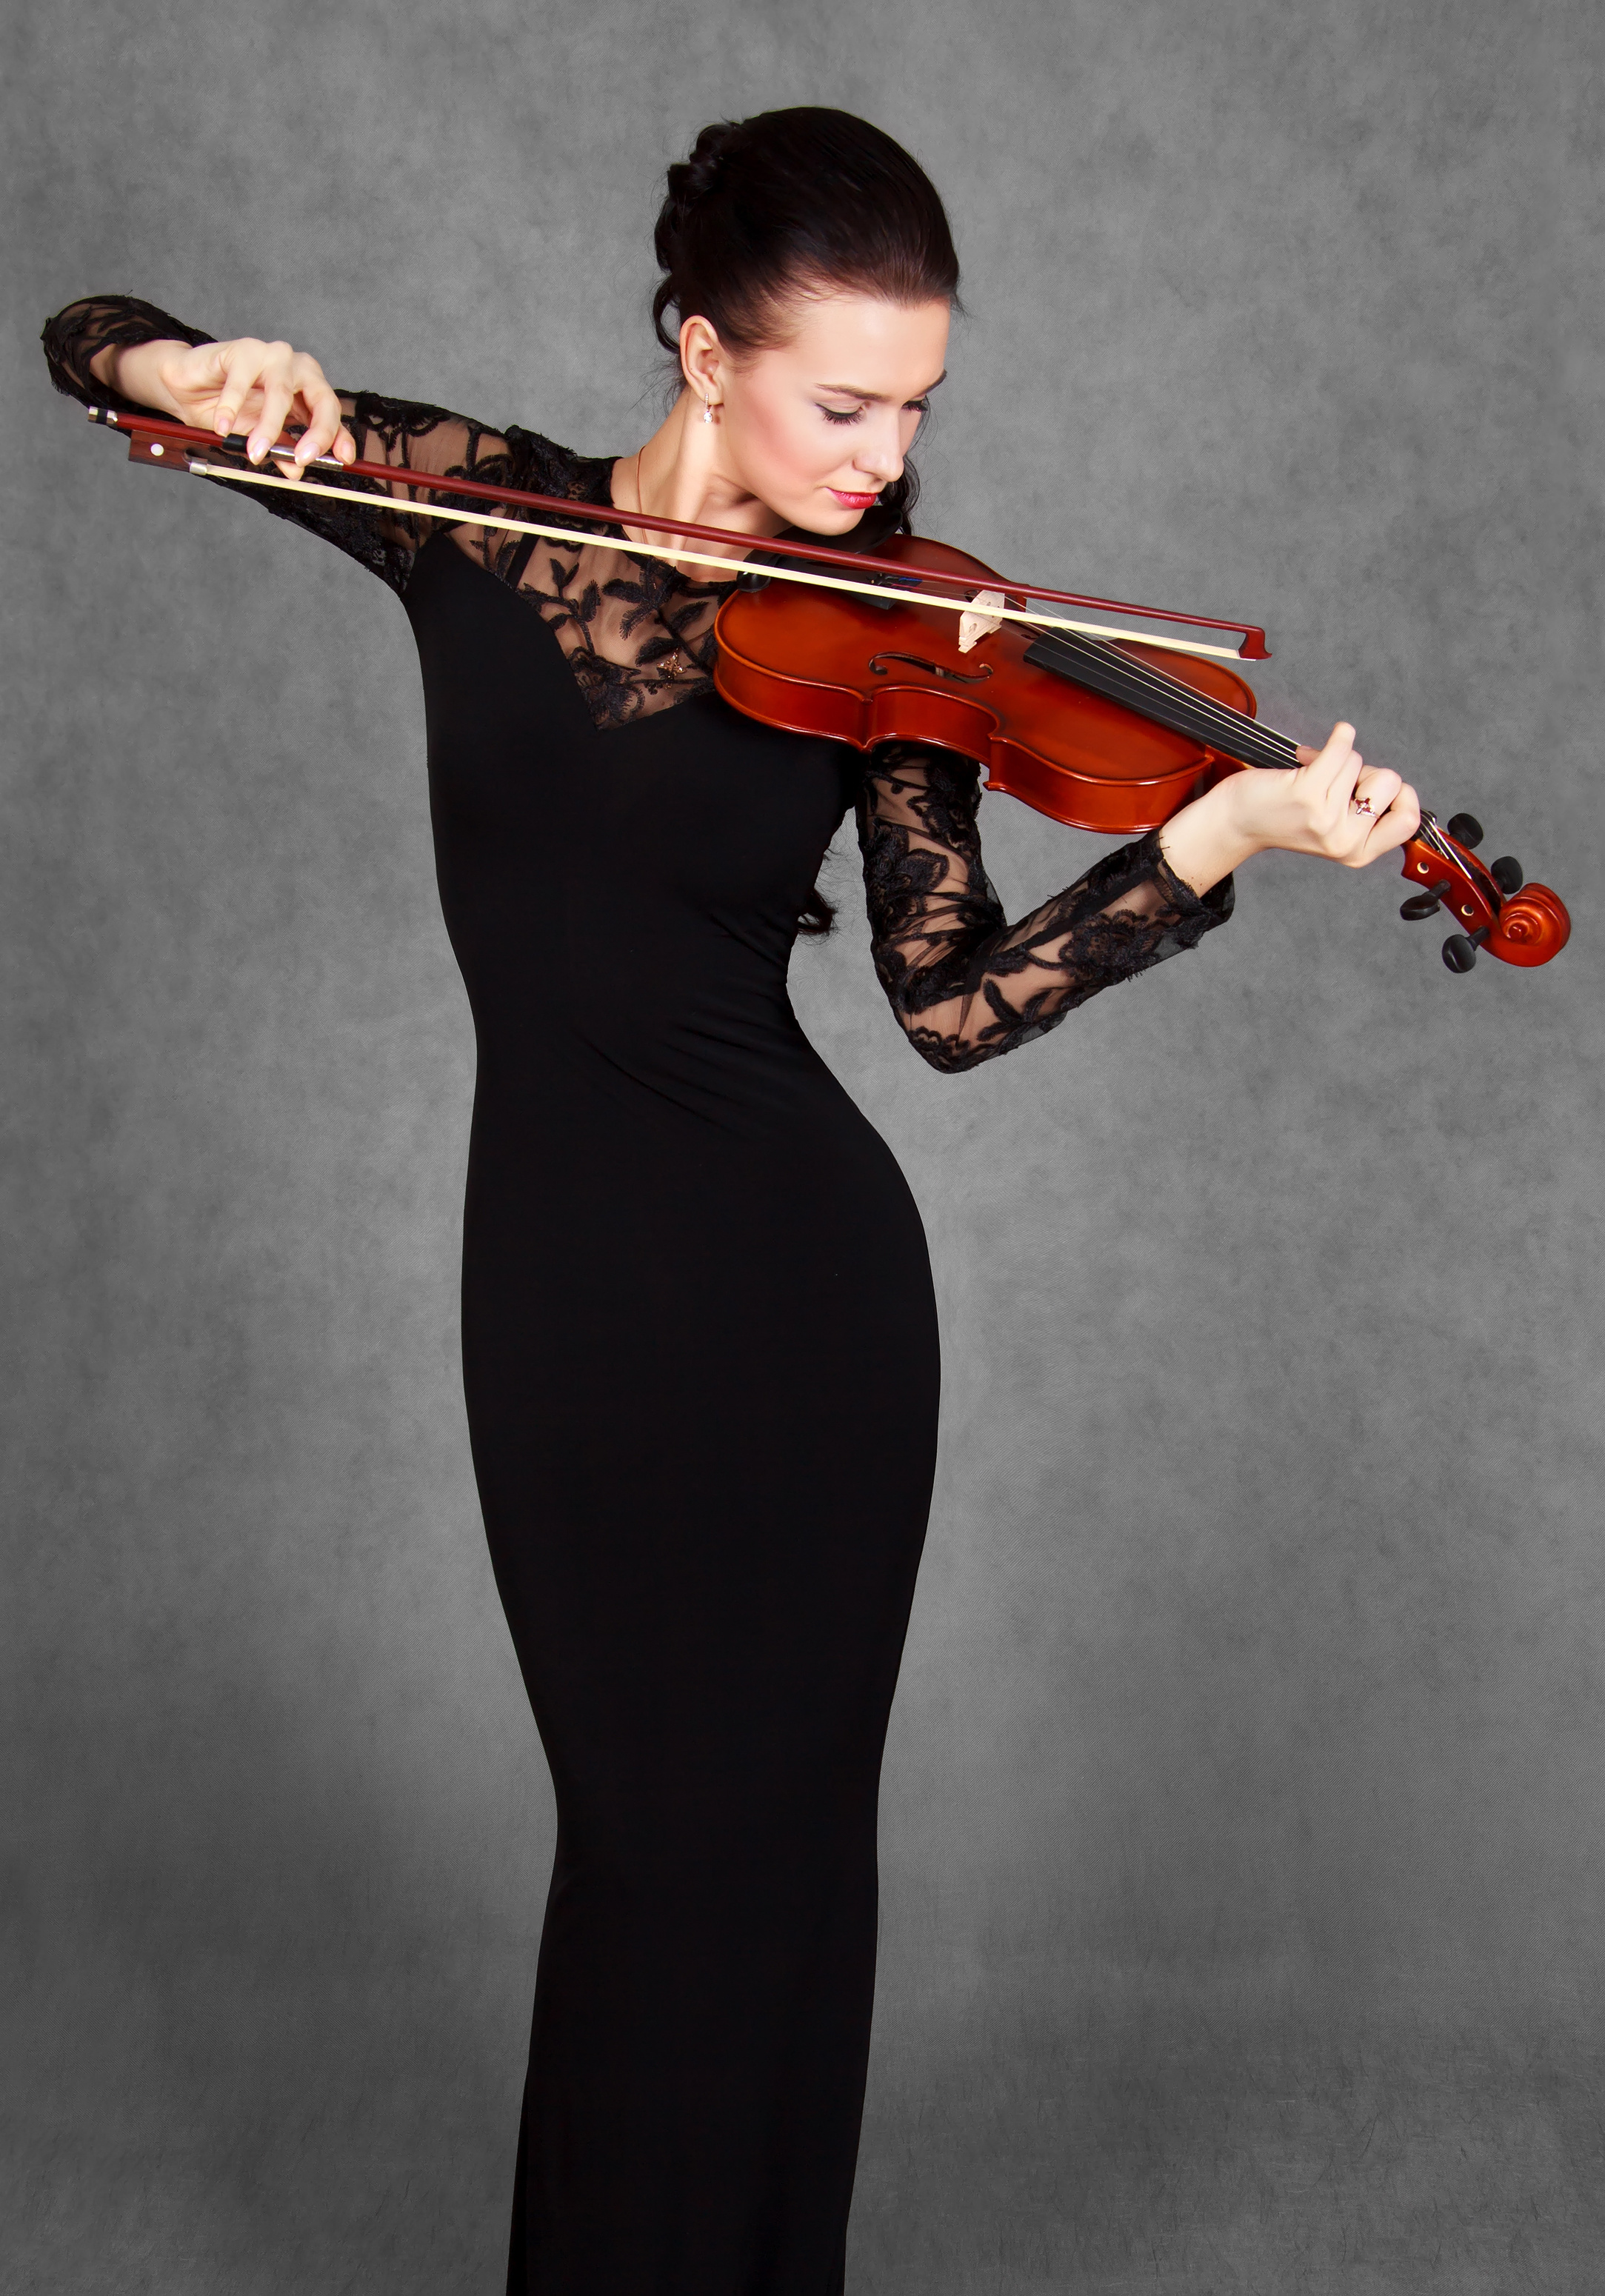 Professional Concert Dress — The Violin